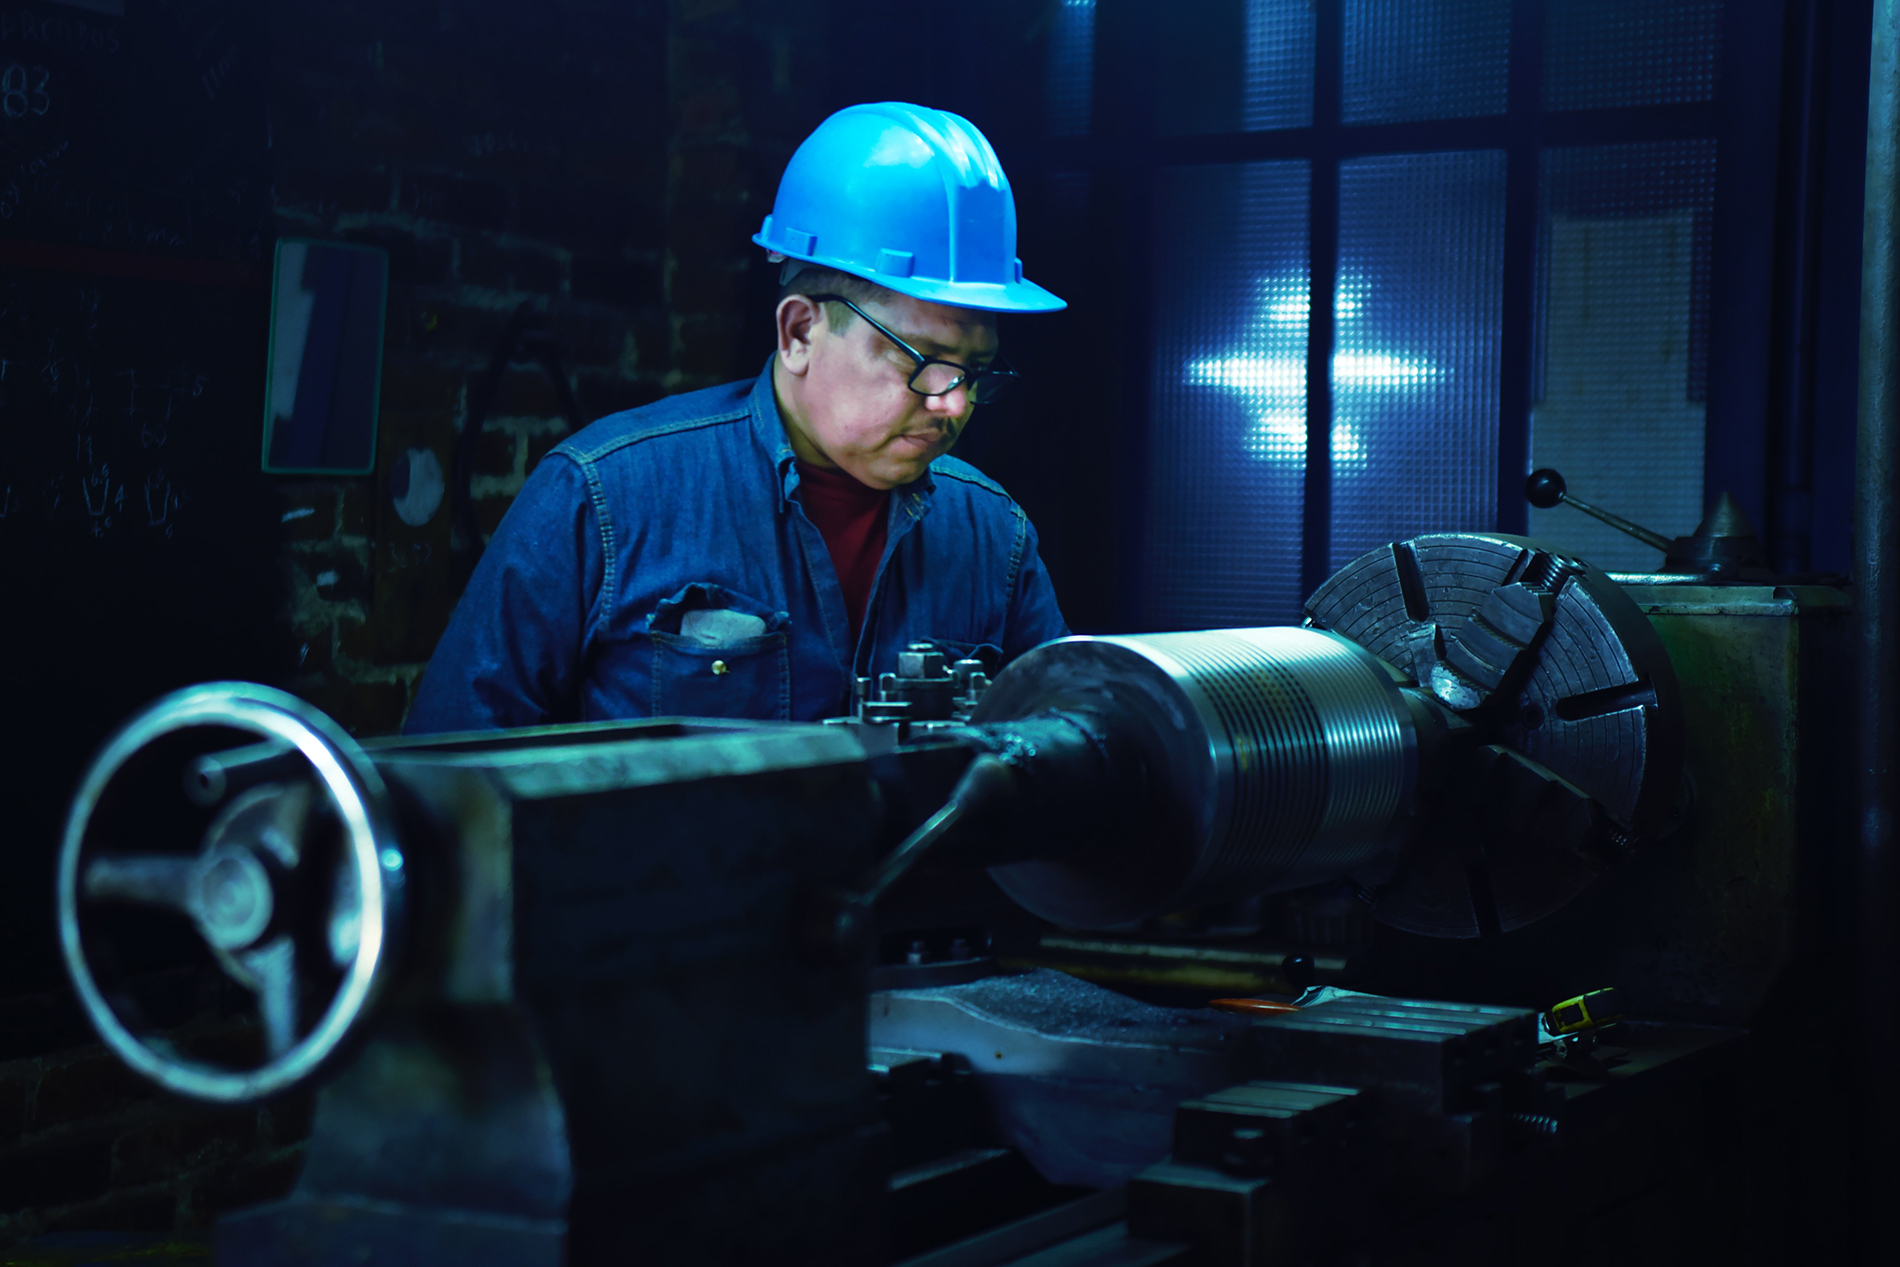 manufacturing job safety tips